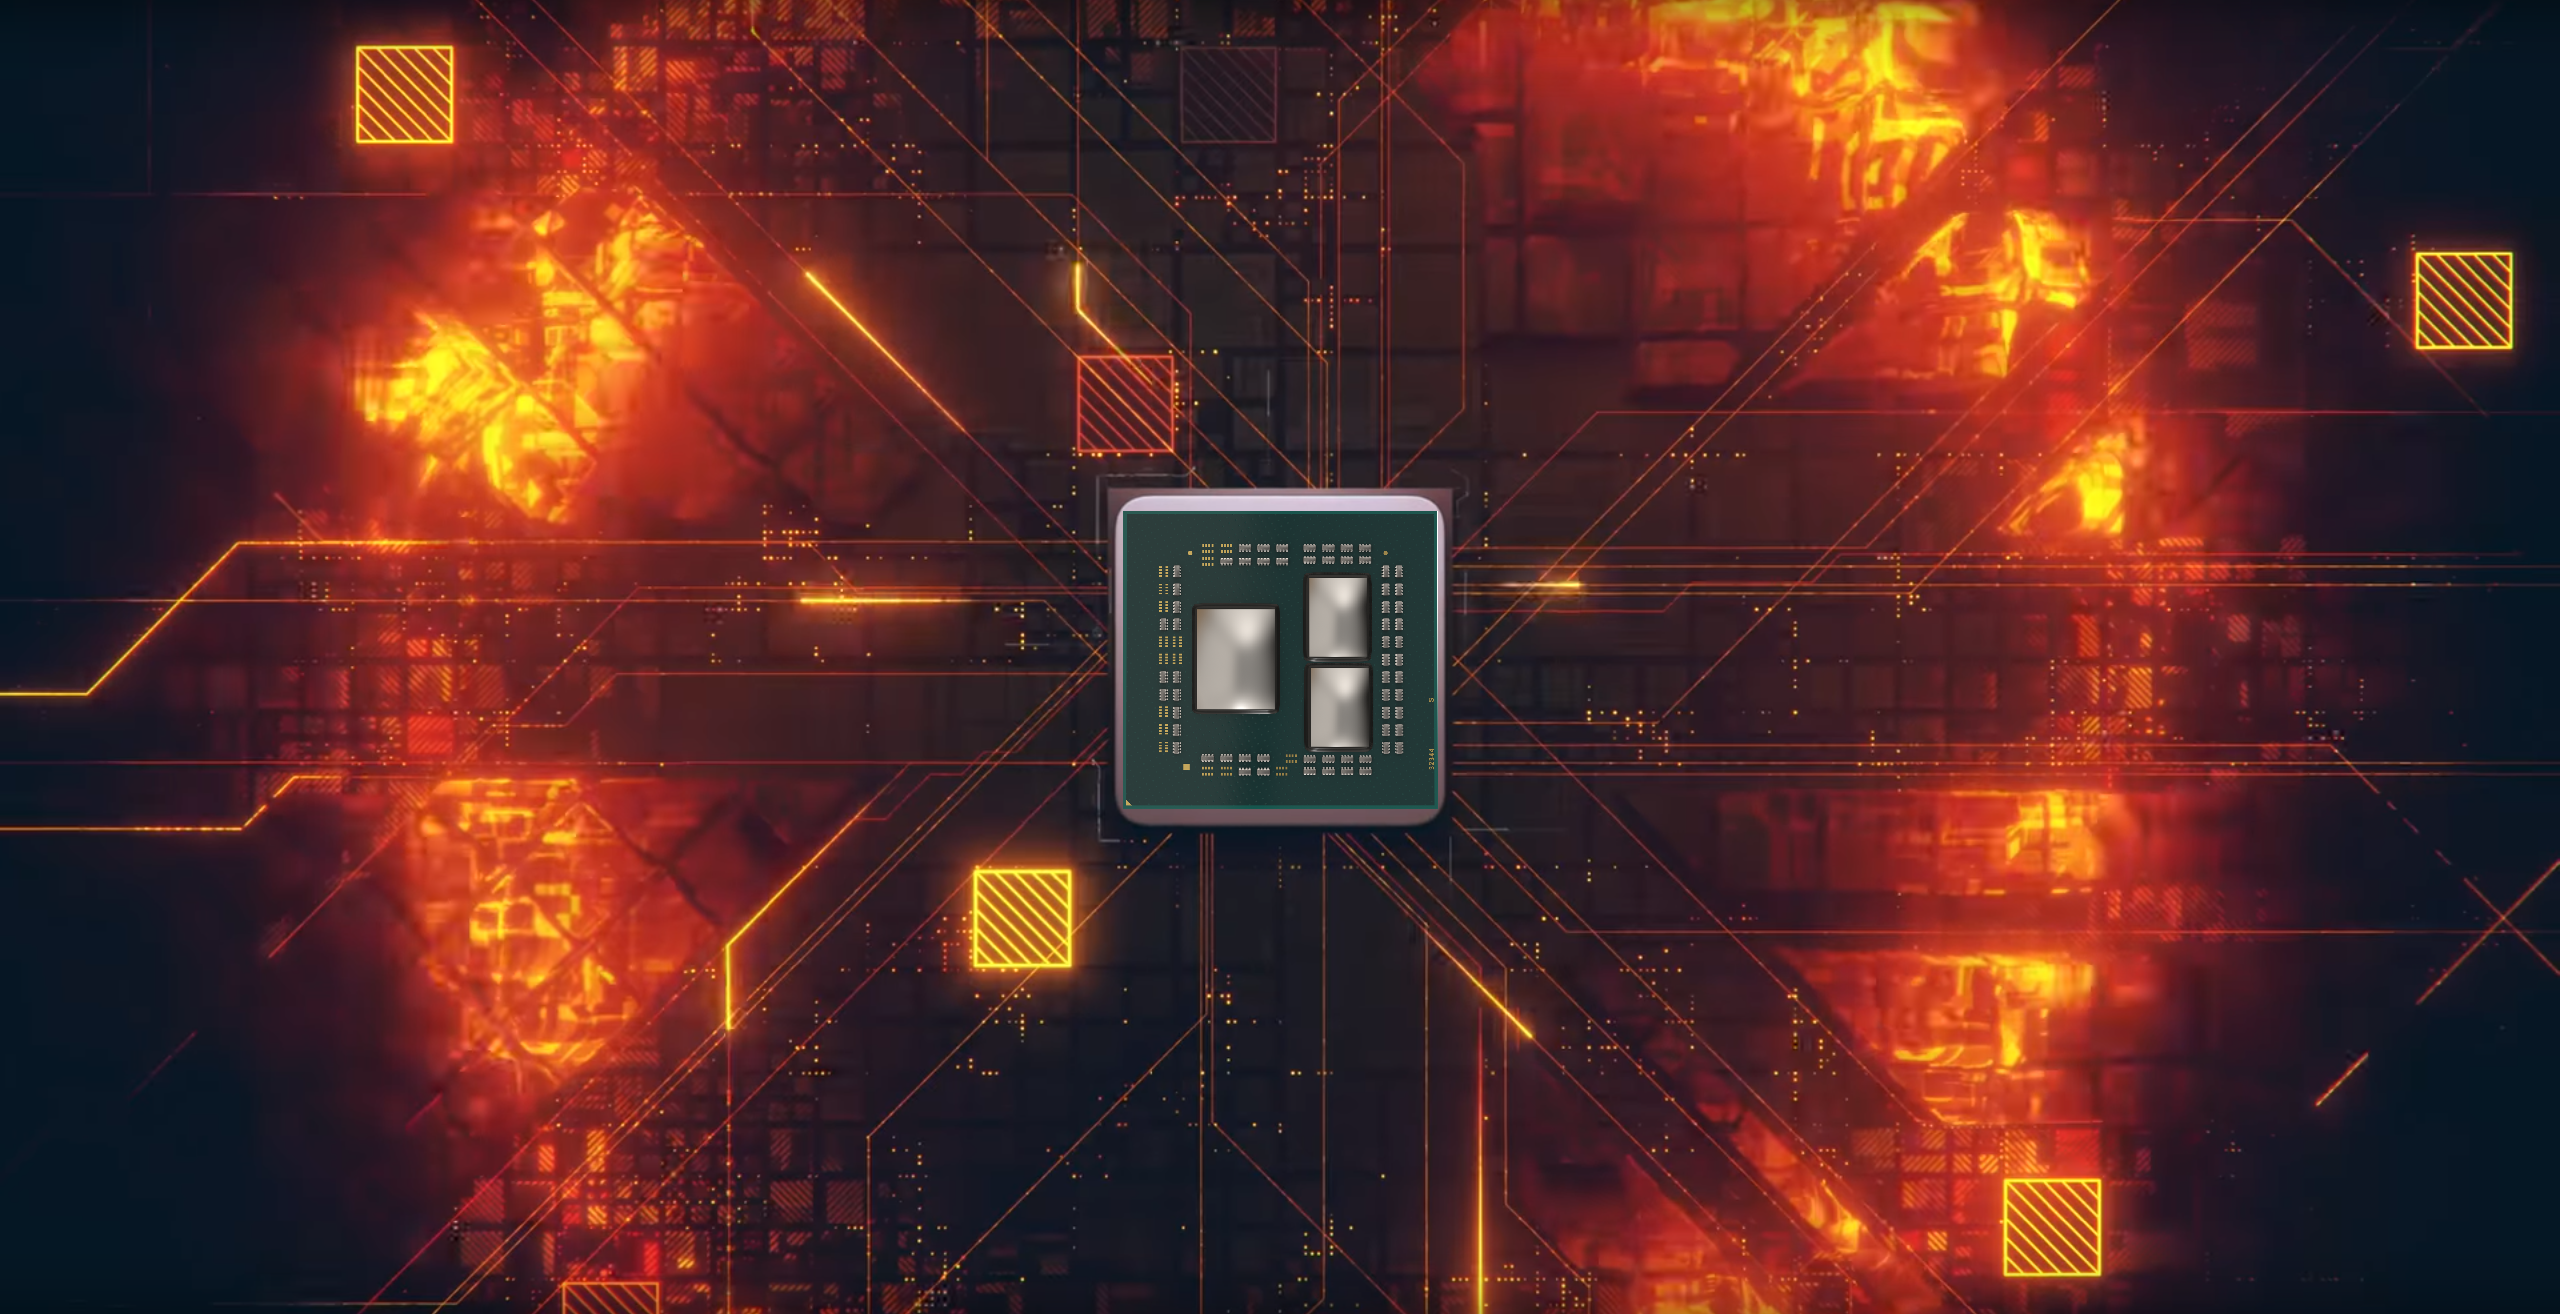 AMD Zen 2 5GHz 12 Core, 4.3GHz 16 Core CPUs Leaked & Benchmarked